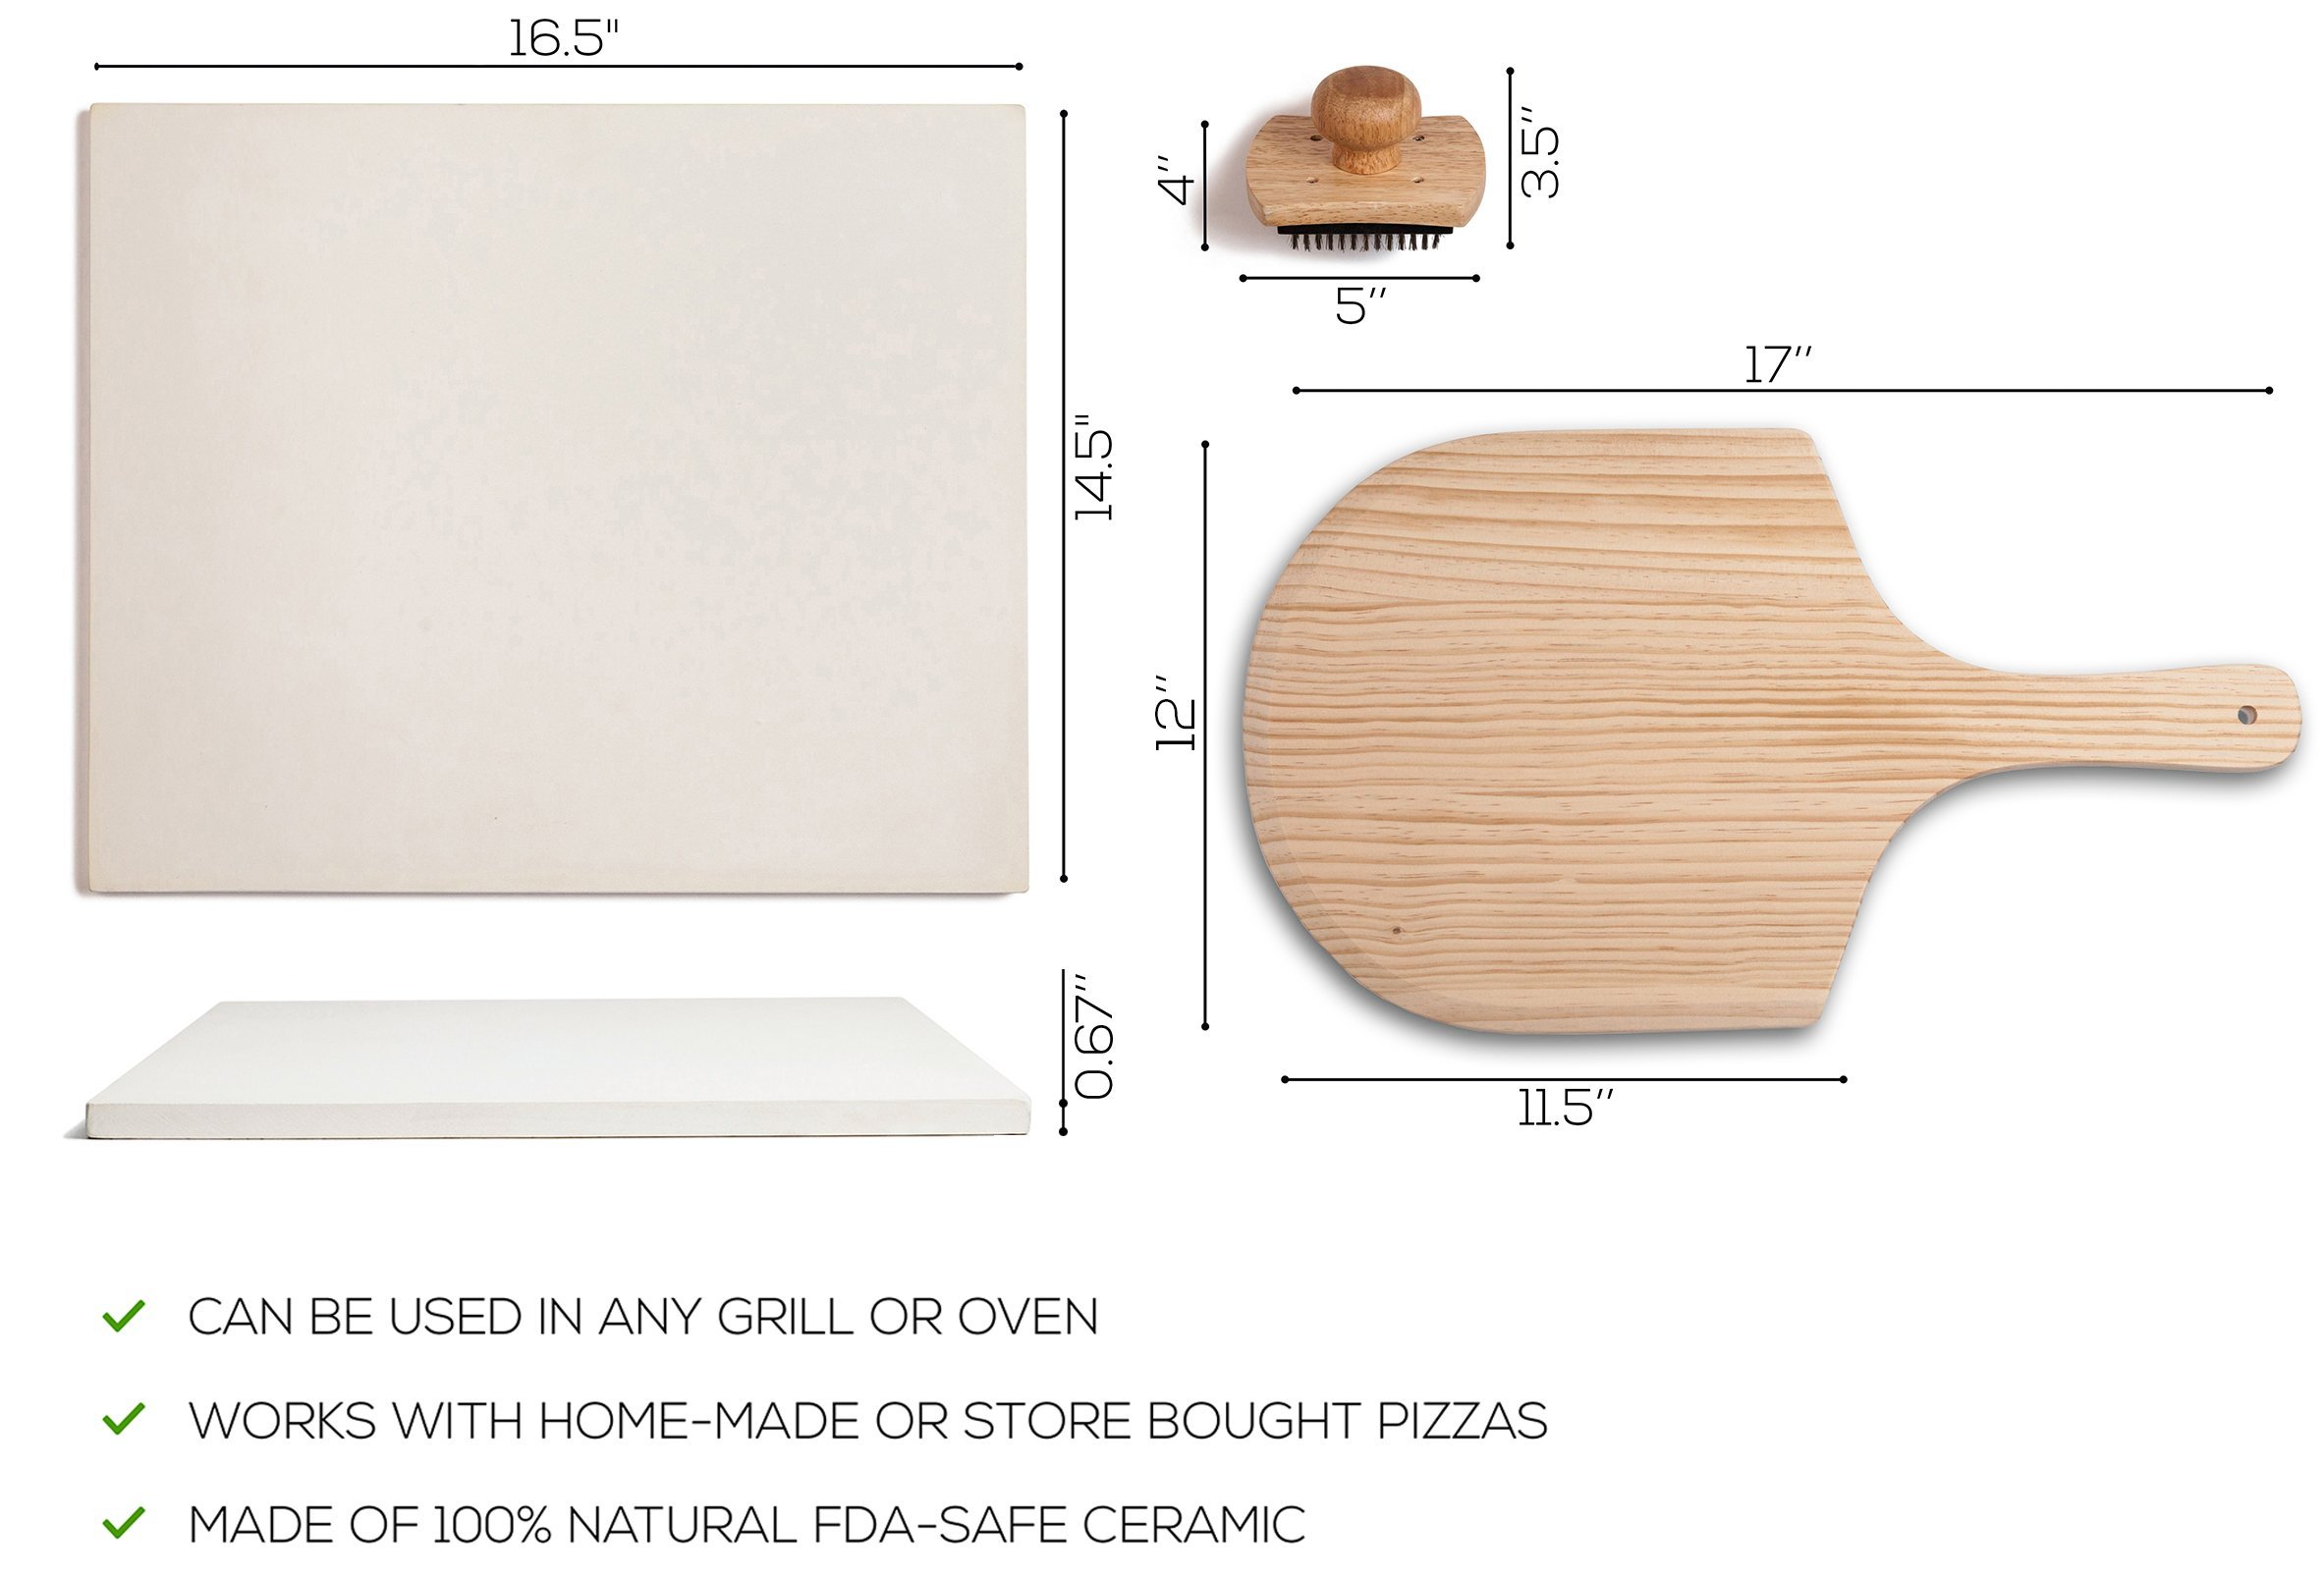 Pizza Stone Set for Baking & Cooking Pizzas & Bread in Oven, Grill or BBQ - Rectangular Stone 16.5''x14.5'', Wood Pizza Peel & Brush - Large Ceramic Pan Cooks Pizza Evenly & Gives Crispy Crust by Kenley (Image #6)